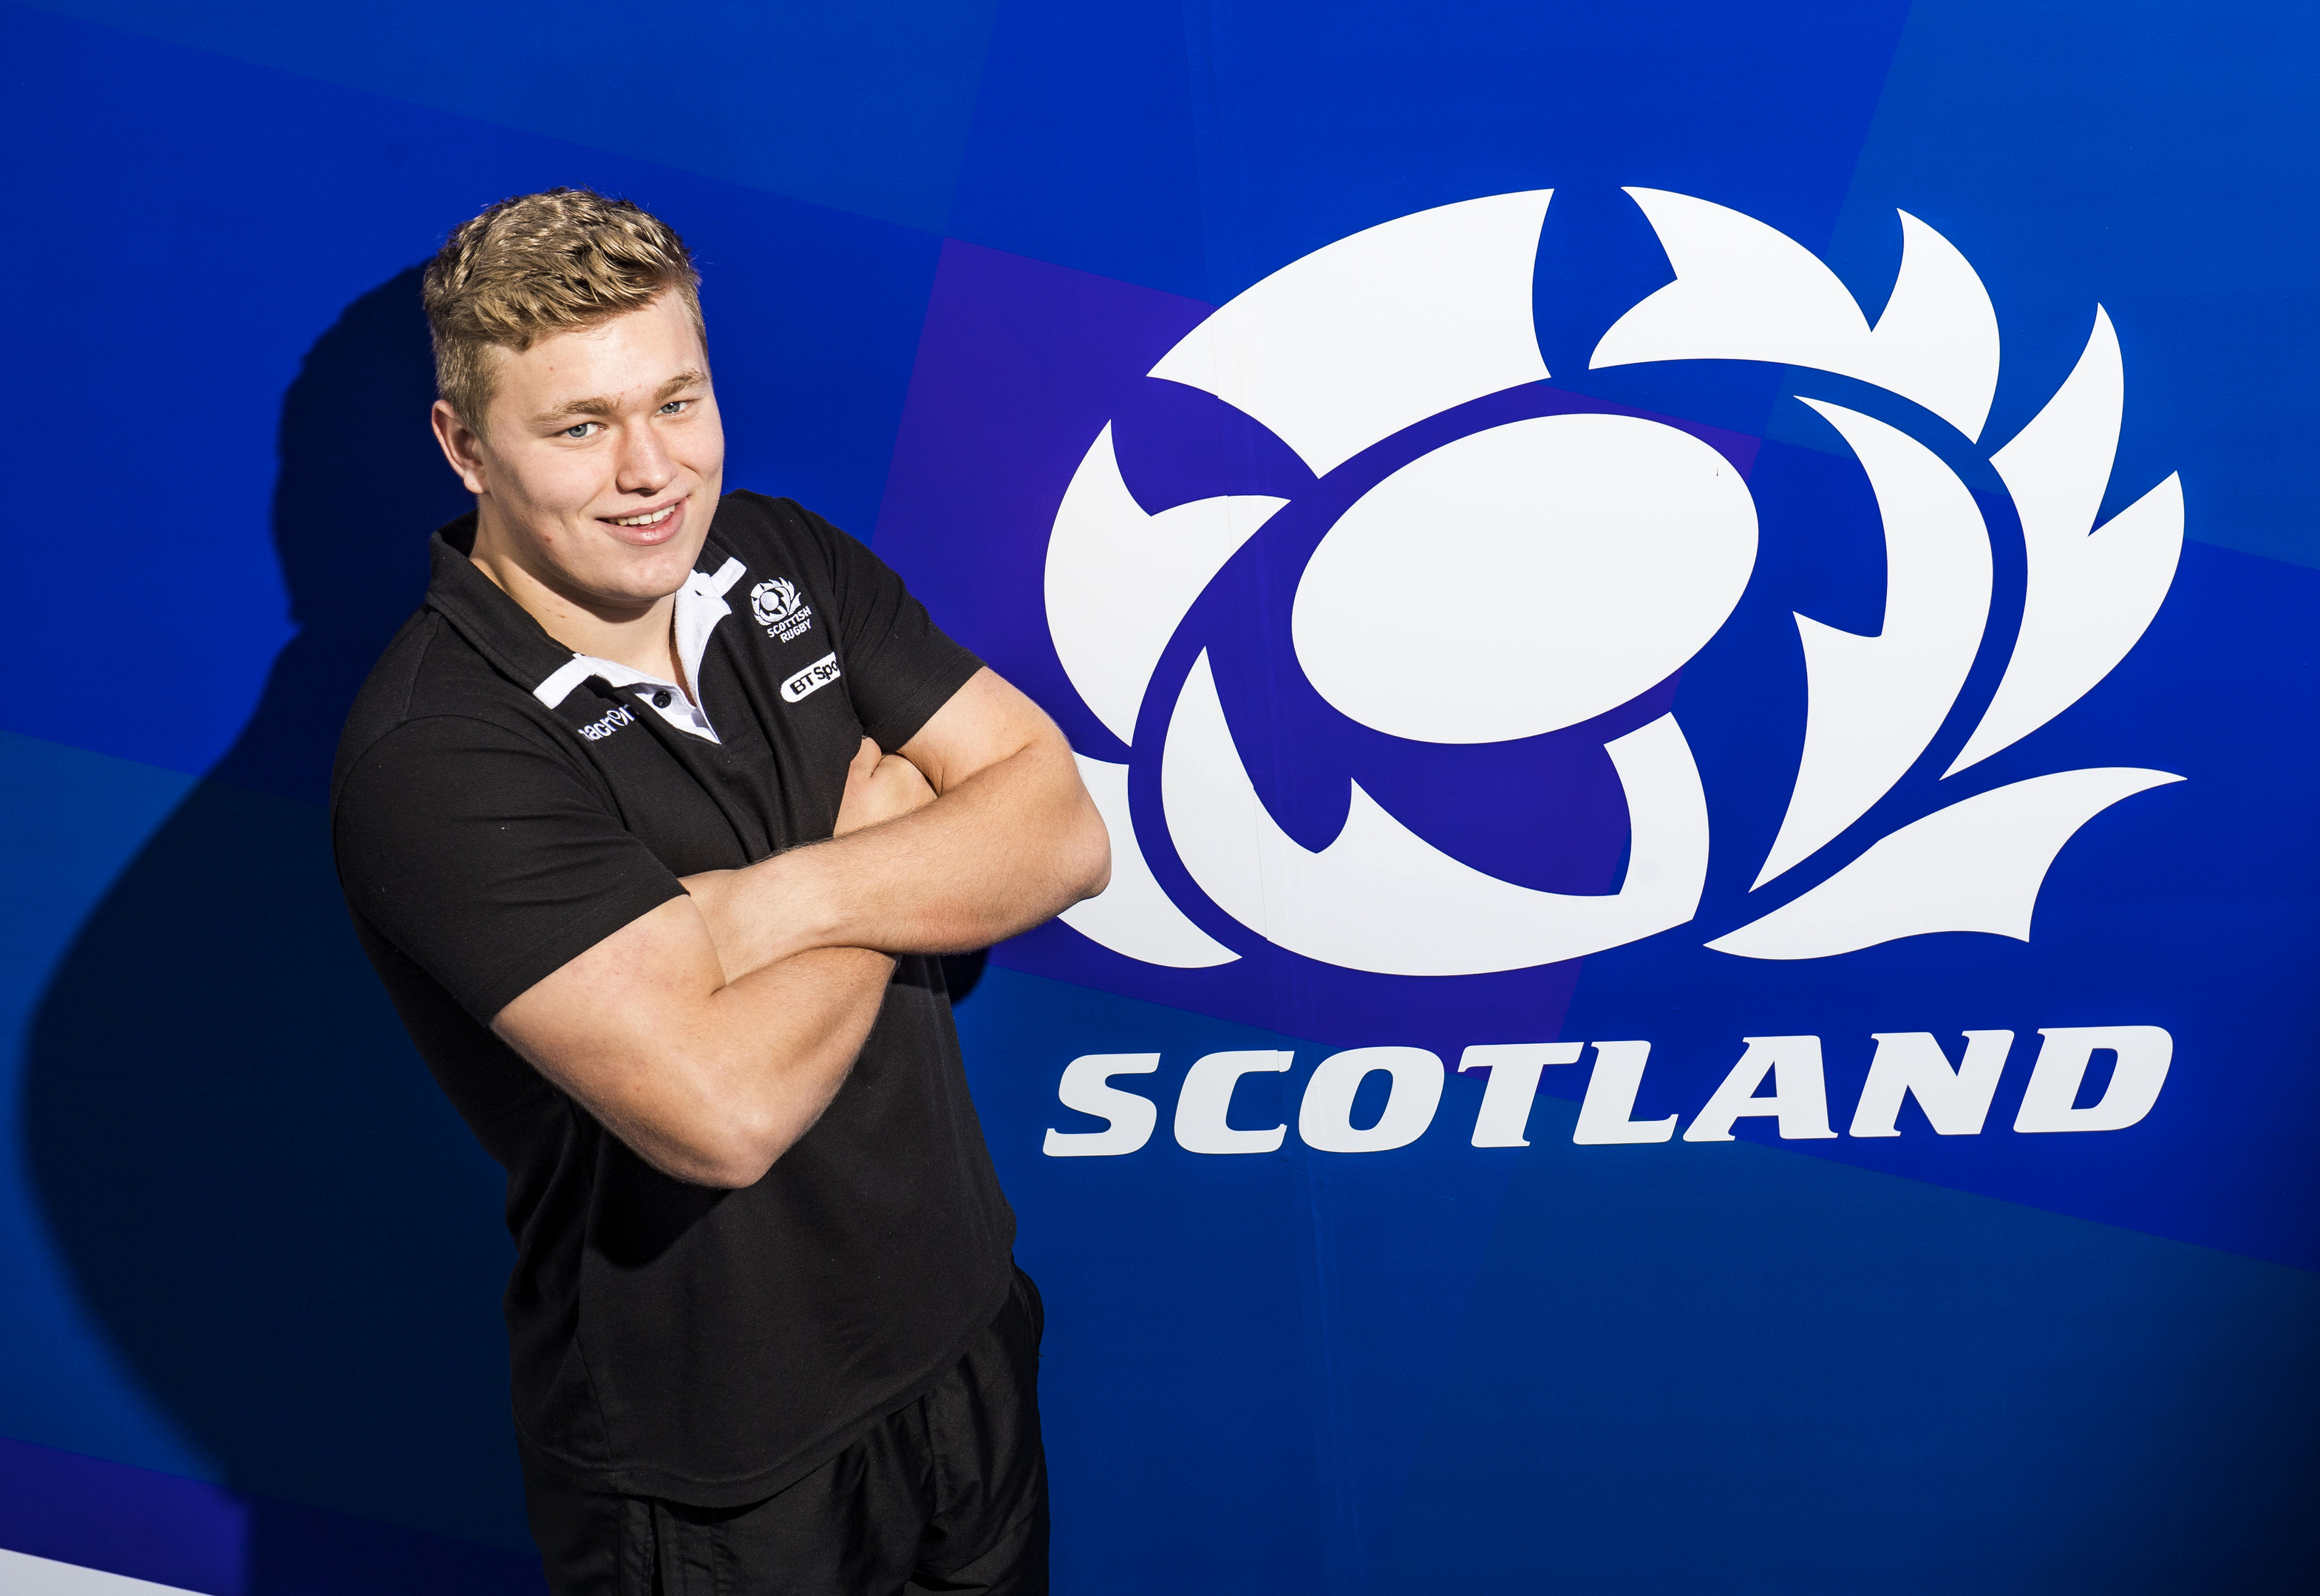 Angus Fraser will spend five months in South Africa under the John Macphail Scholarship.